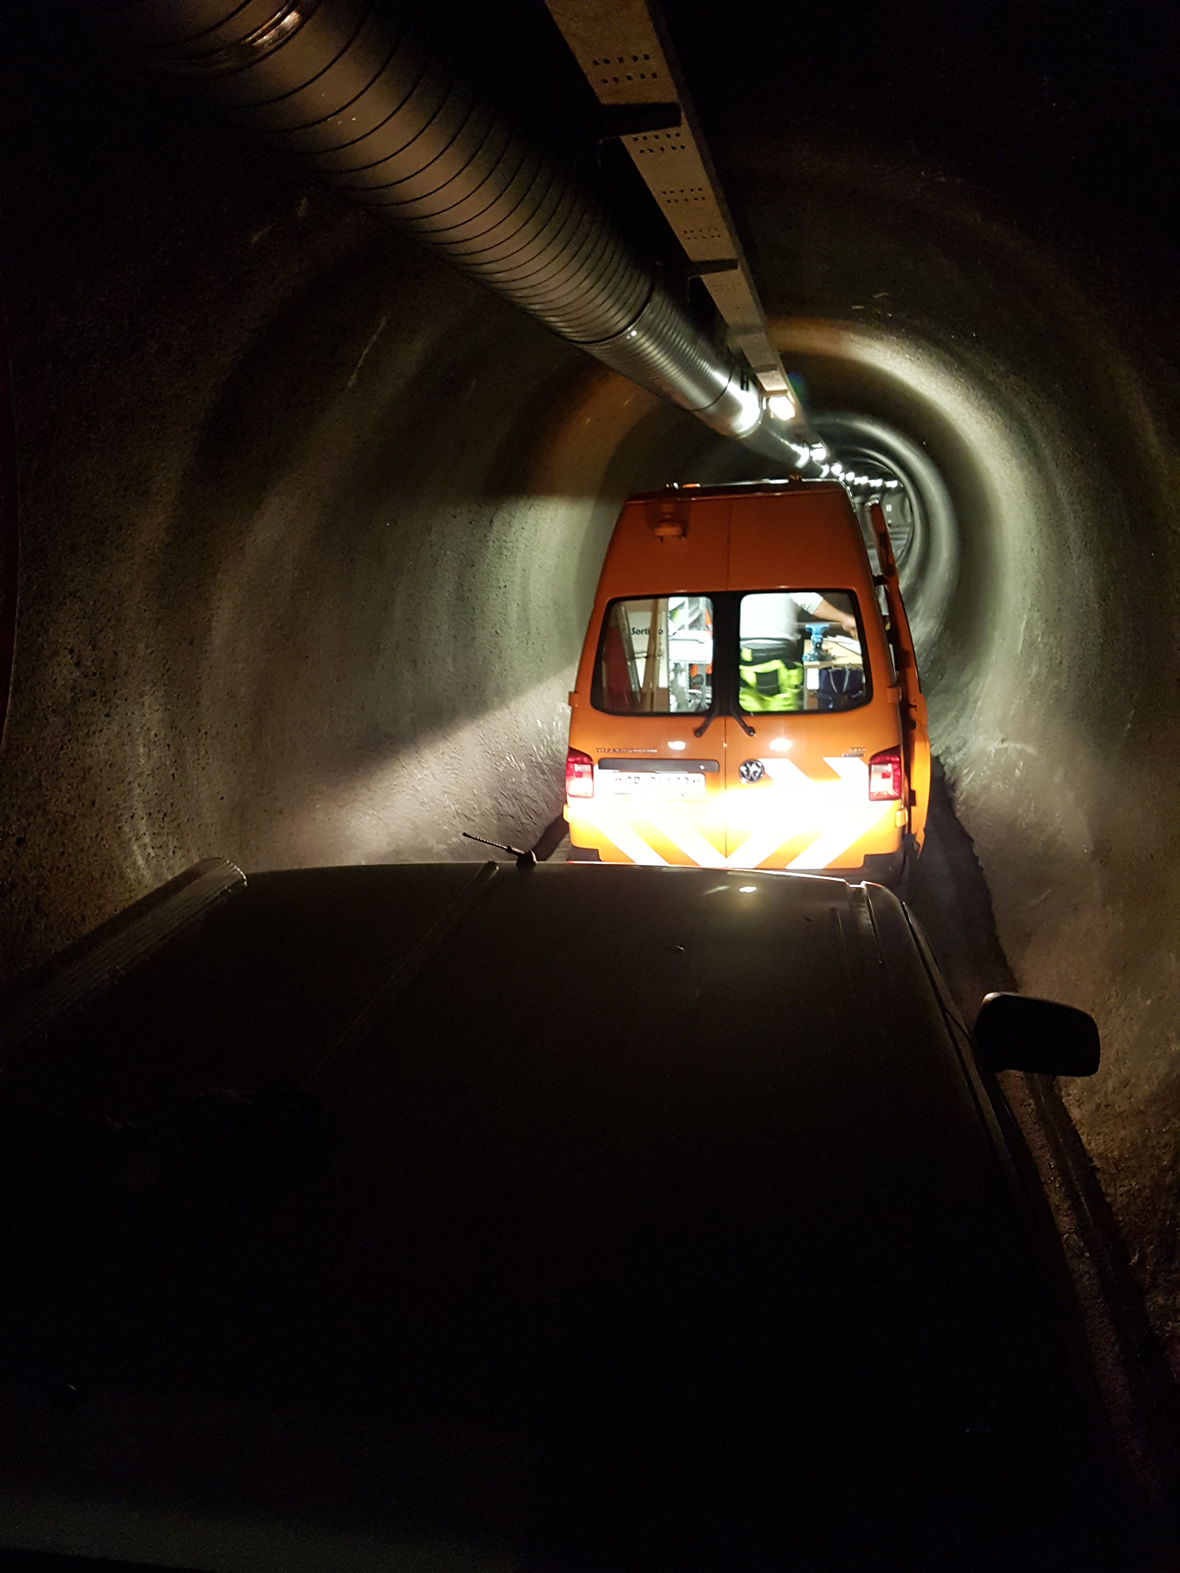 saasertunnel 5